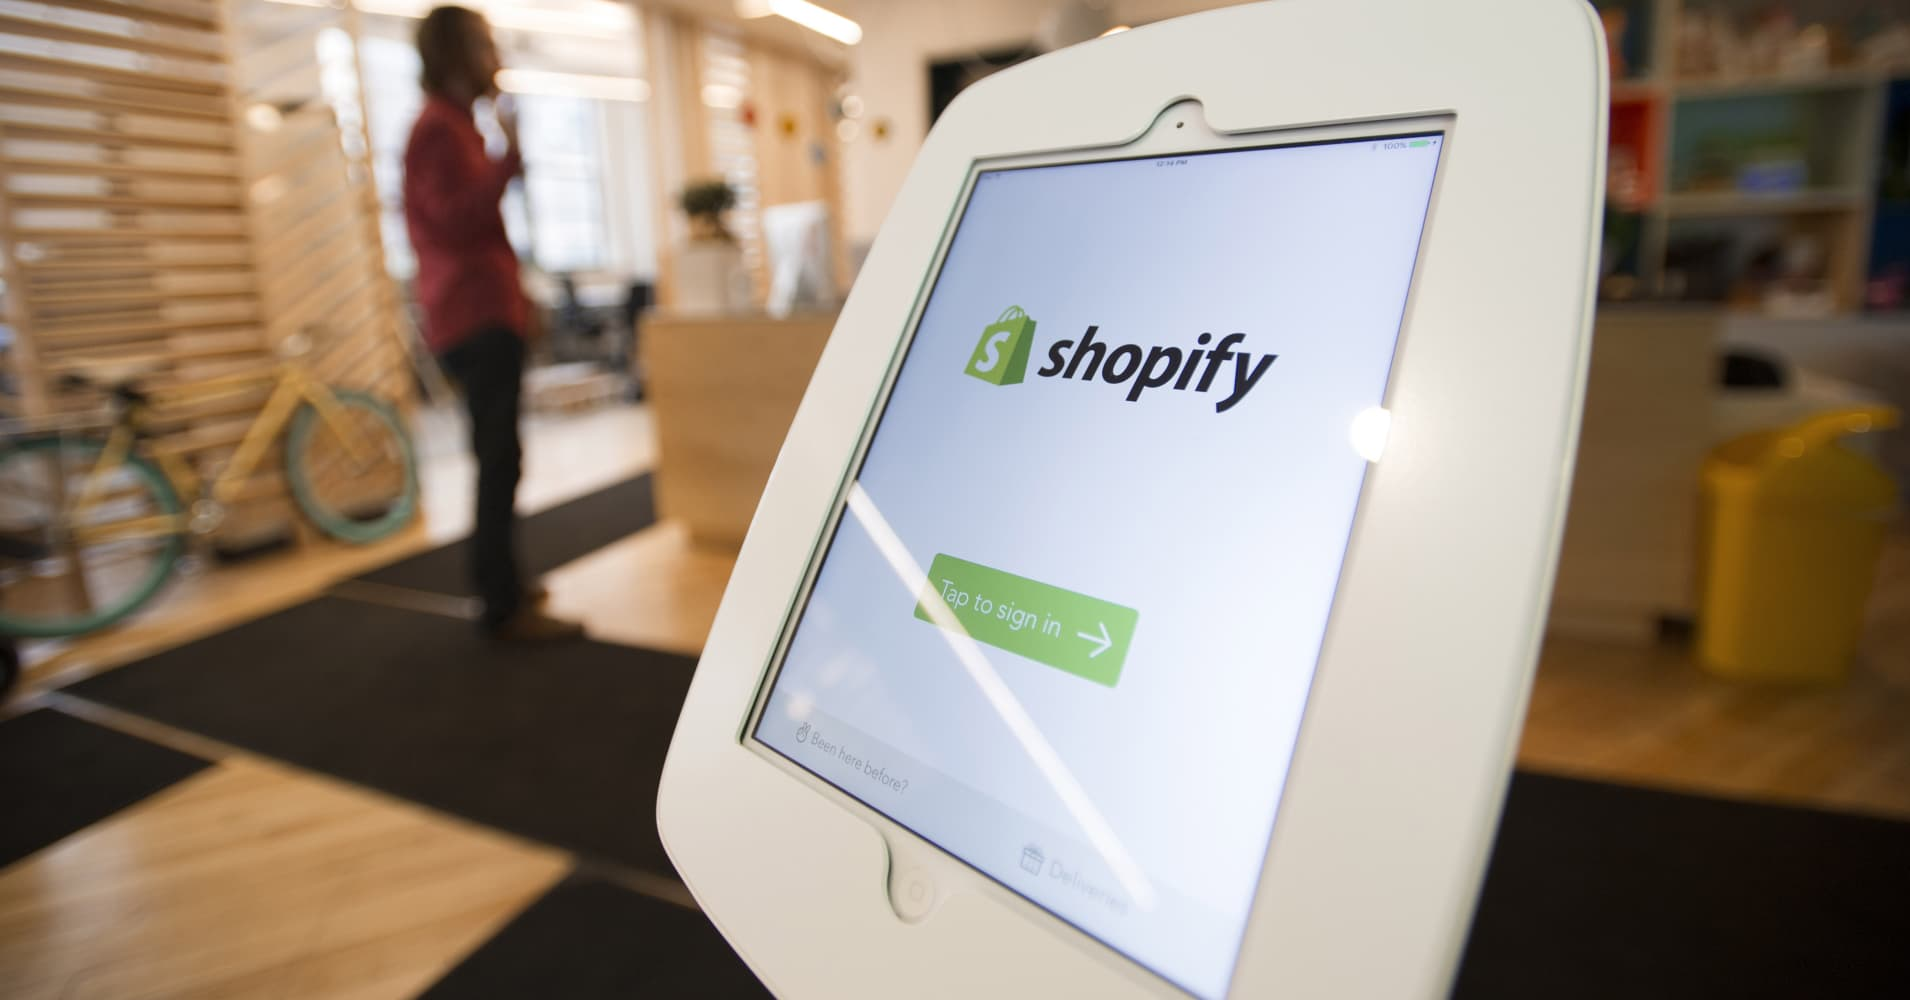 Shopify shares dive after tepid guidance, worries about future growth